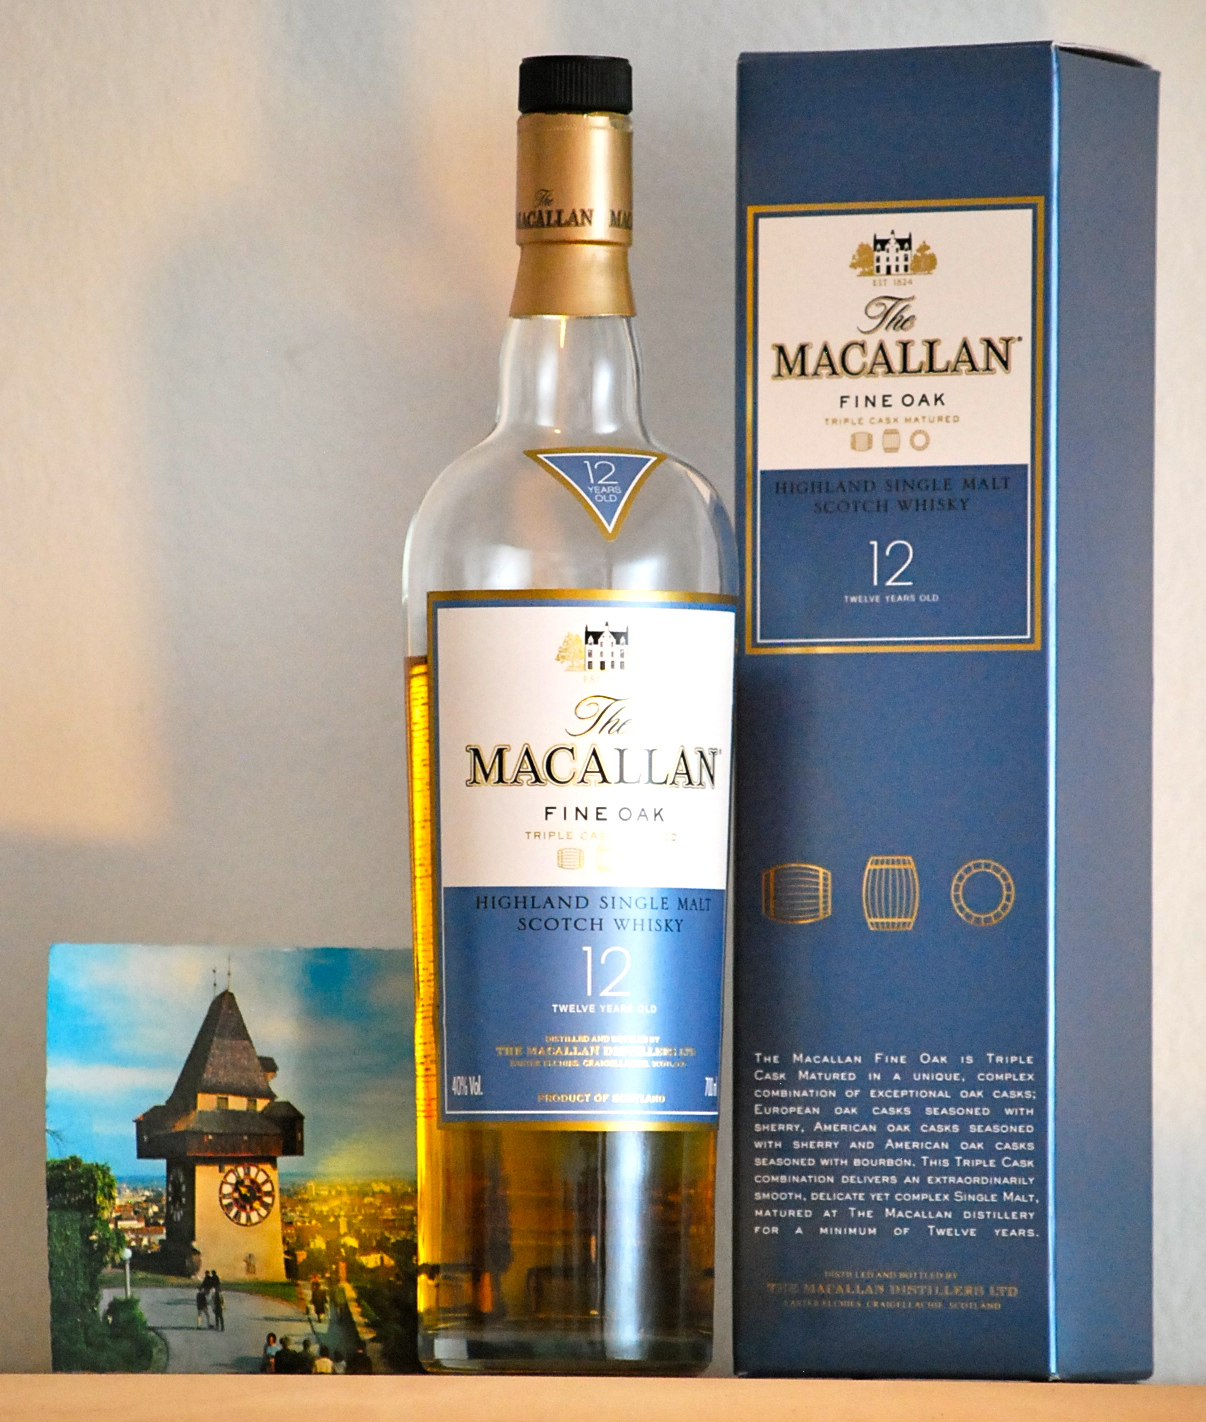 The macallan fine oak - 12 yıllık